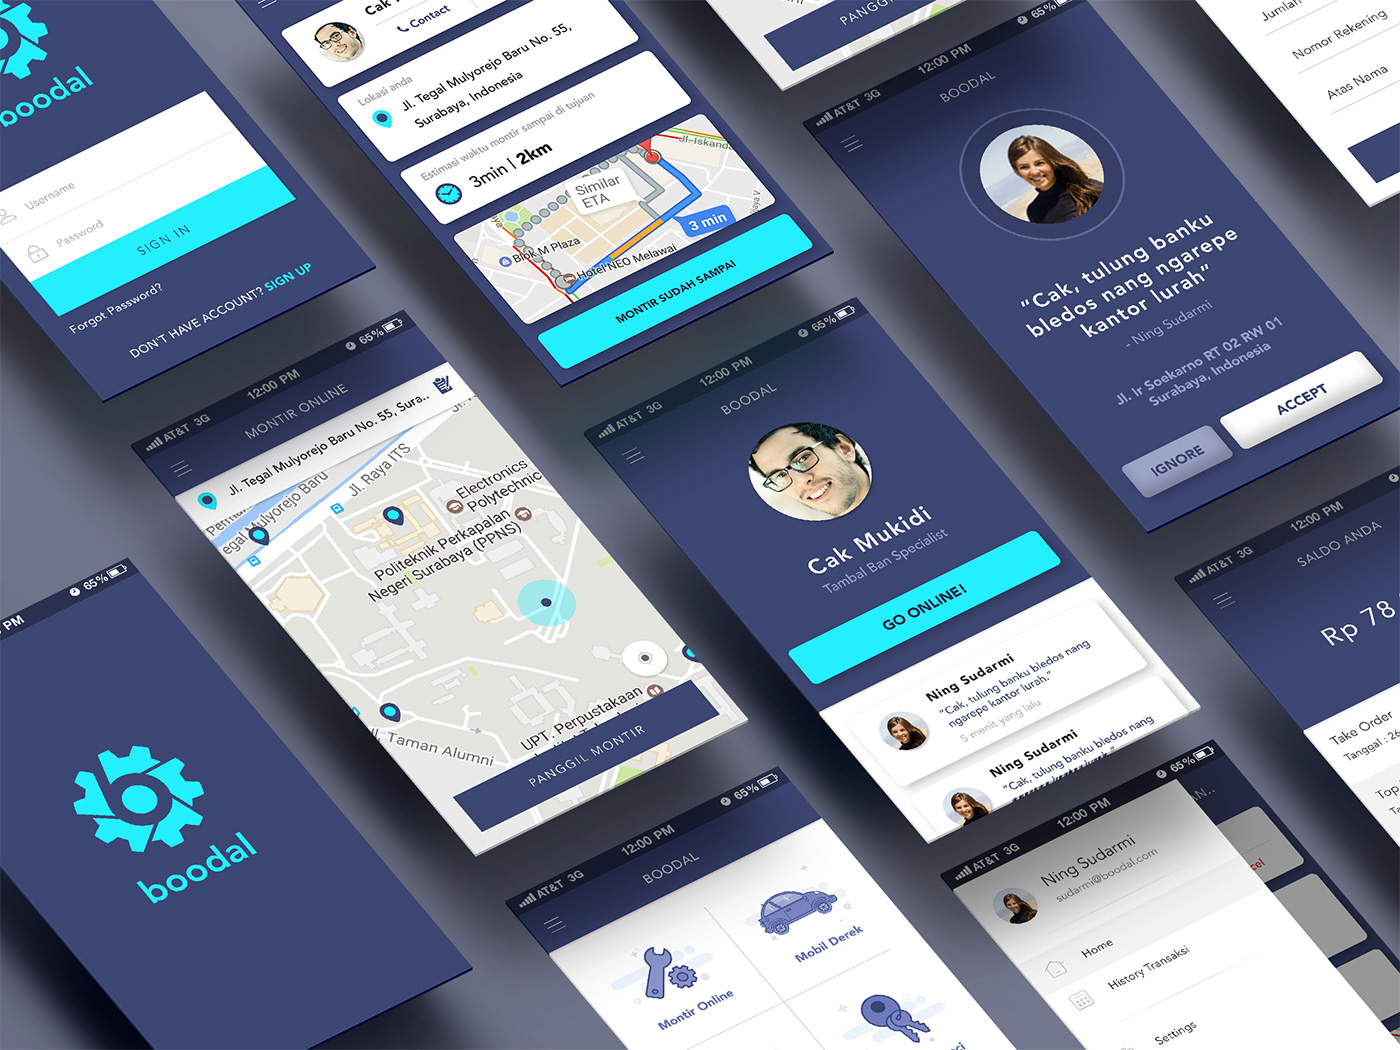 Bloodal app design ui kit 12 free screens for psd Blueprint designer free